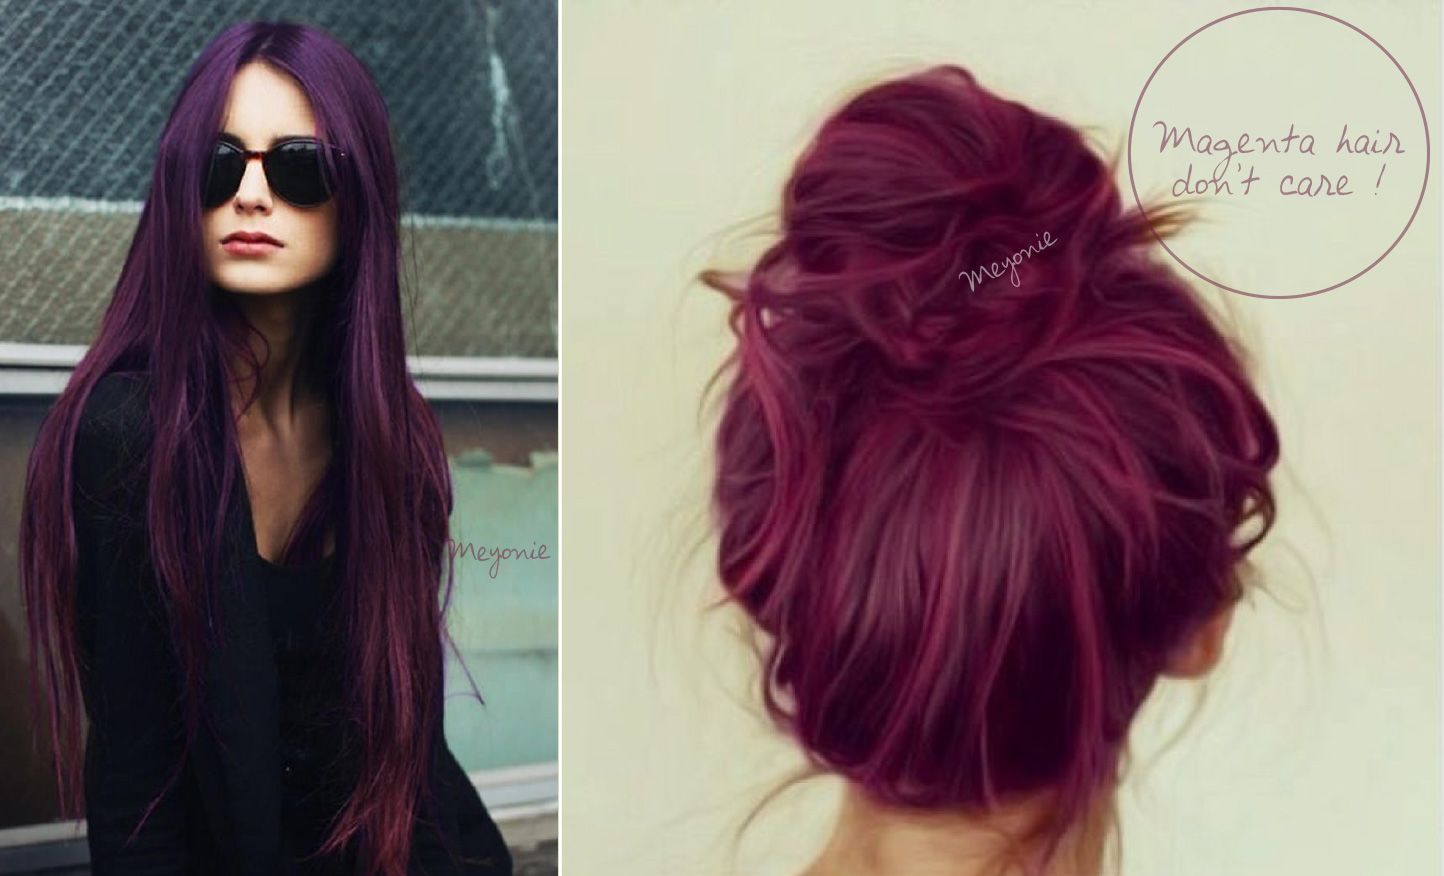 1000 images about coiffure on pinterest bobs coupes courtes and my hair - Coloration Cheveux Rouge Violet